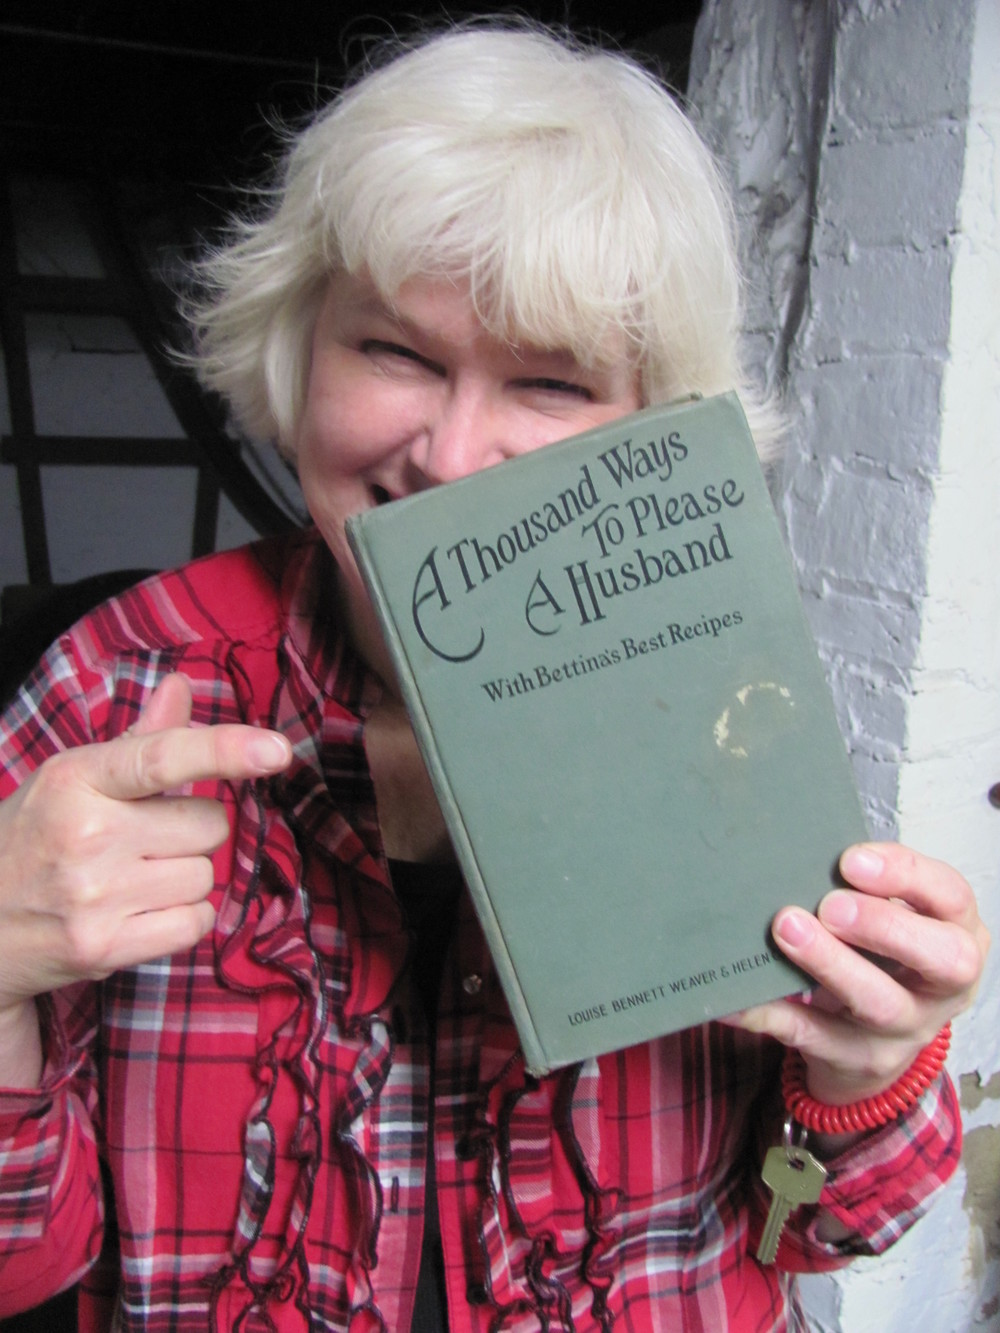 Linda Herron with book